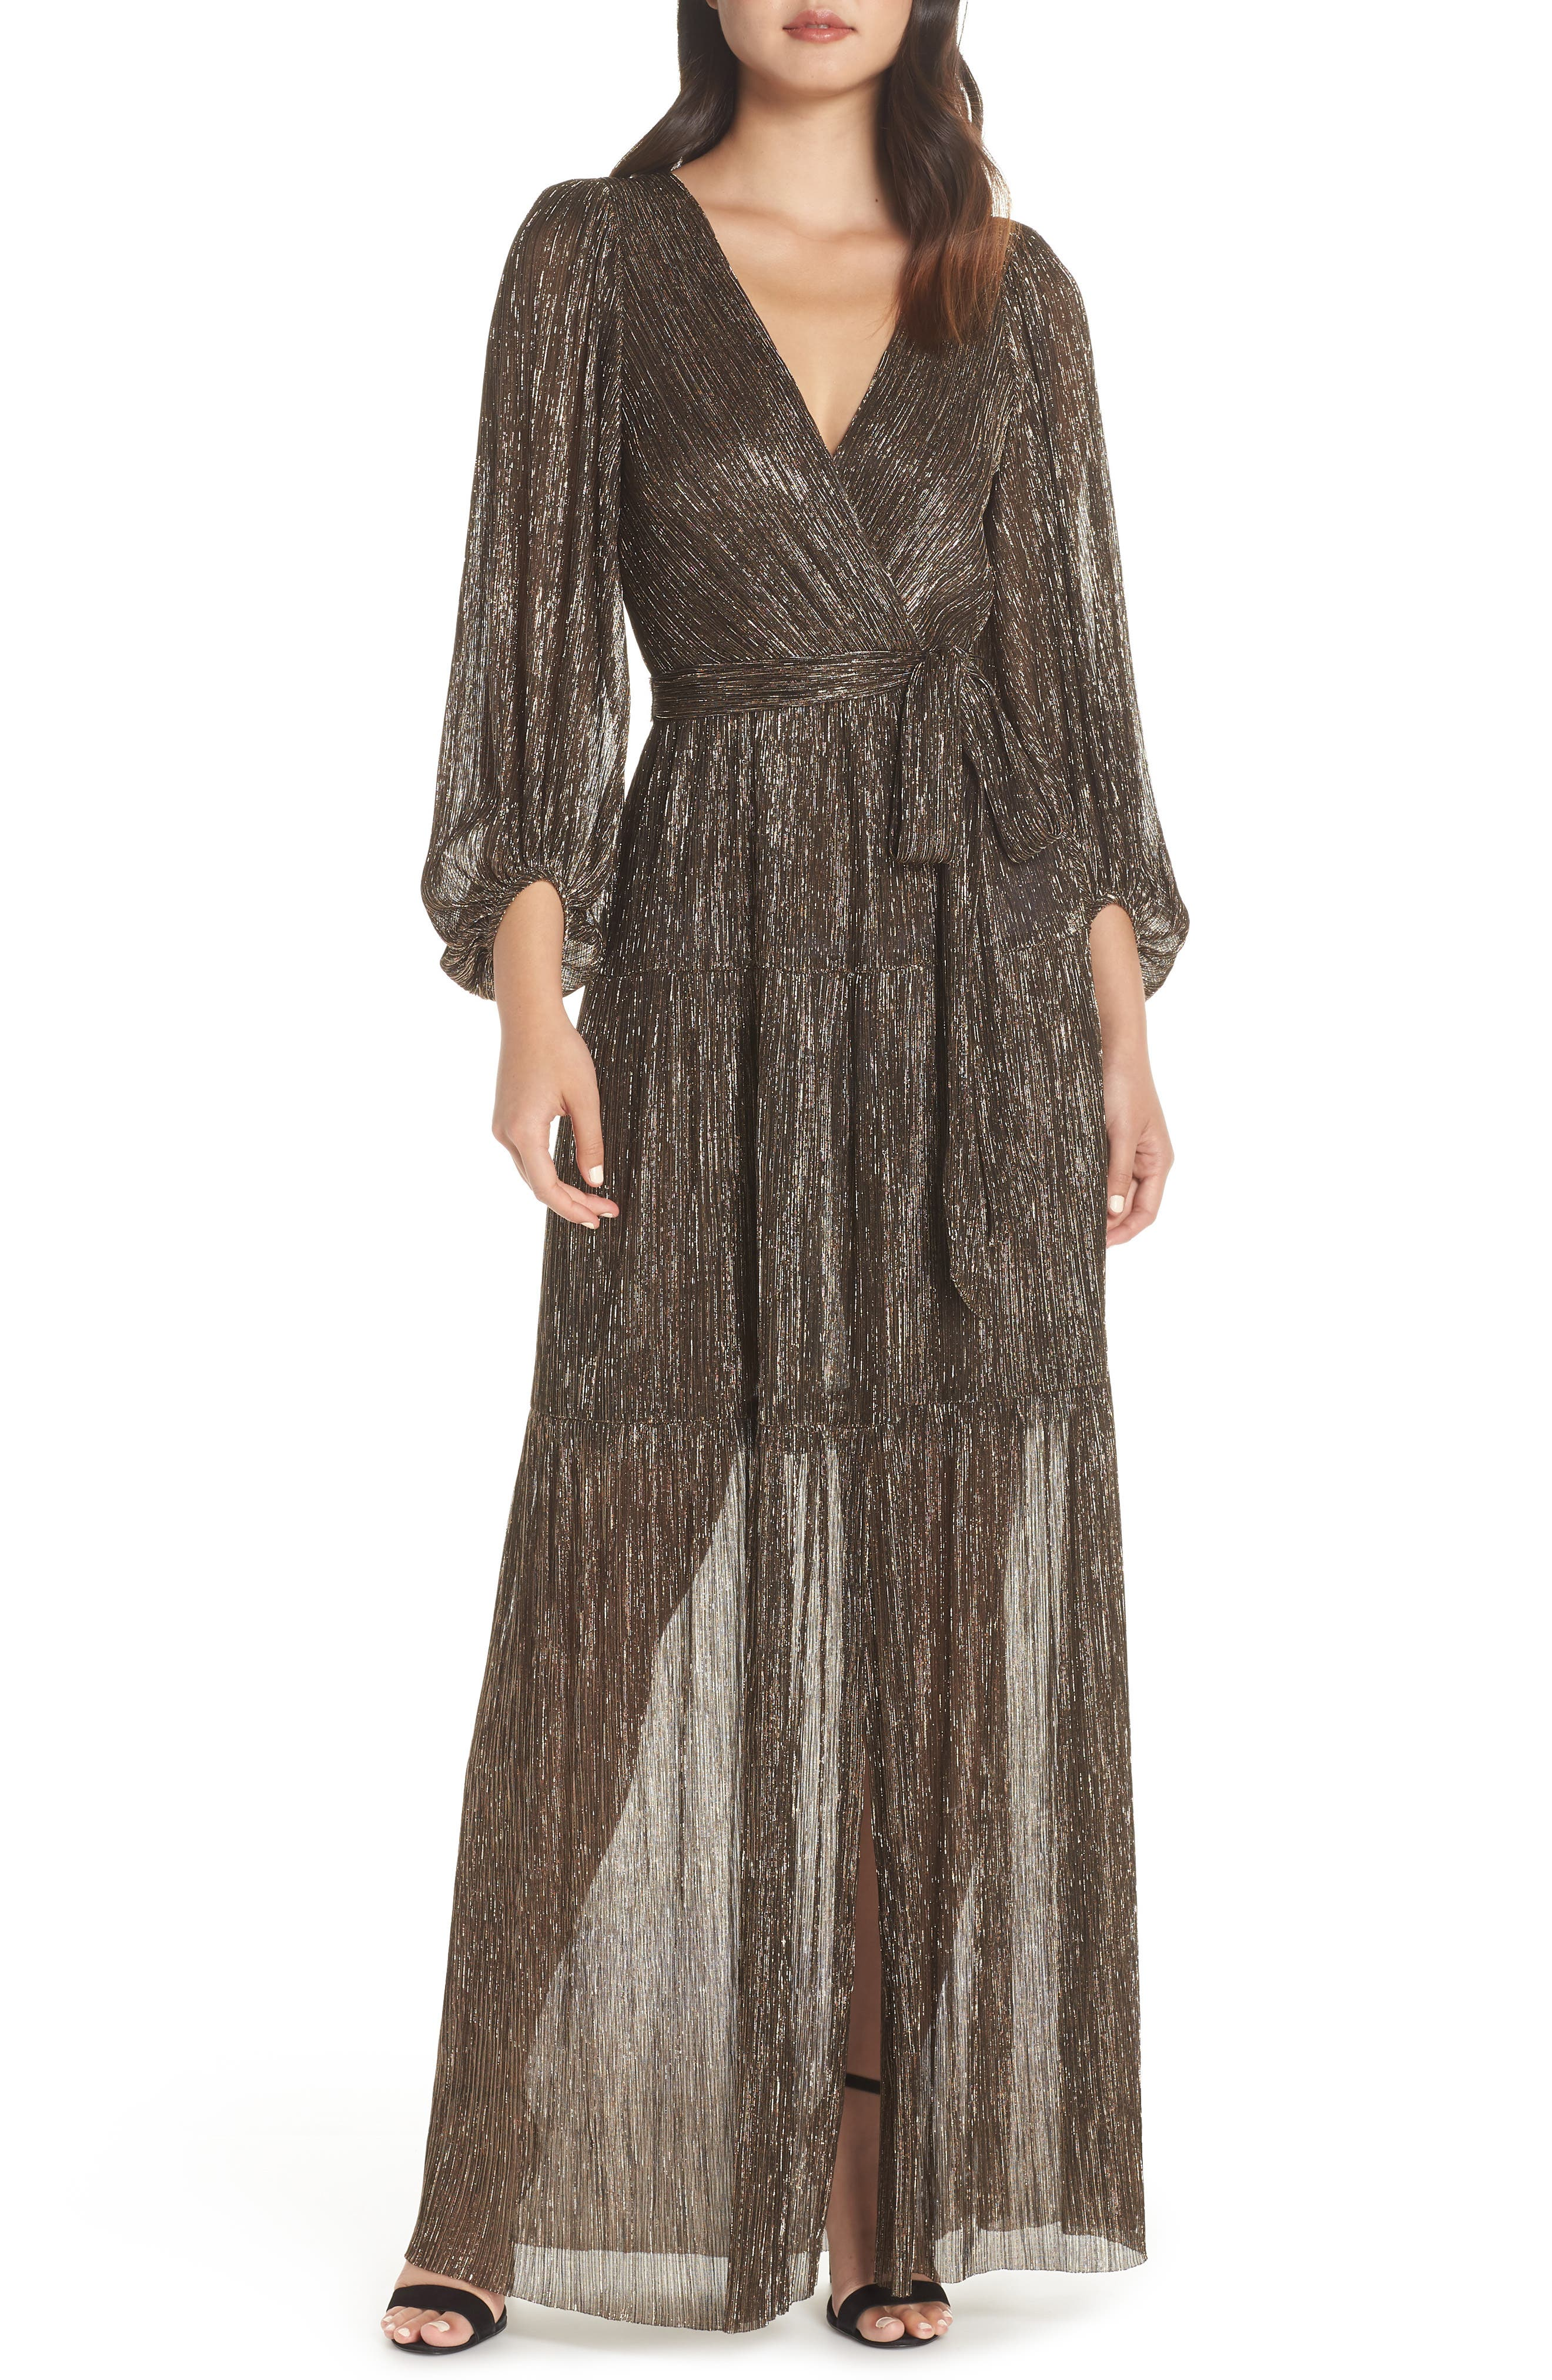 ELIZA J Backless Metallic Maxi Wrap Dress, Main, color, GOLD